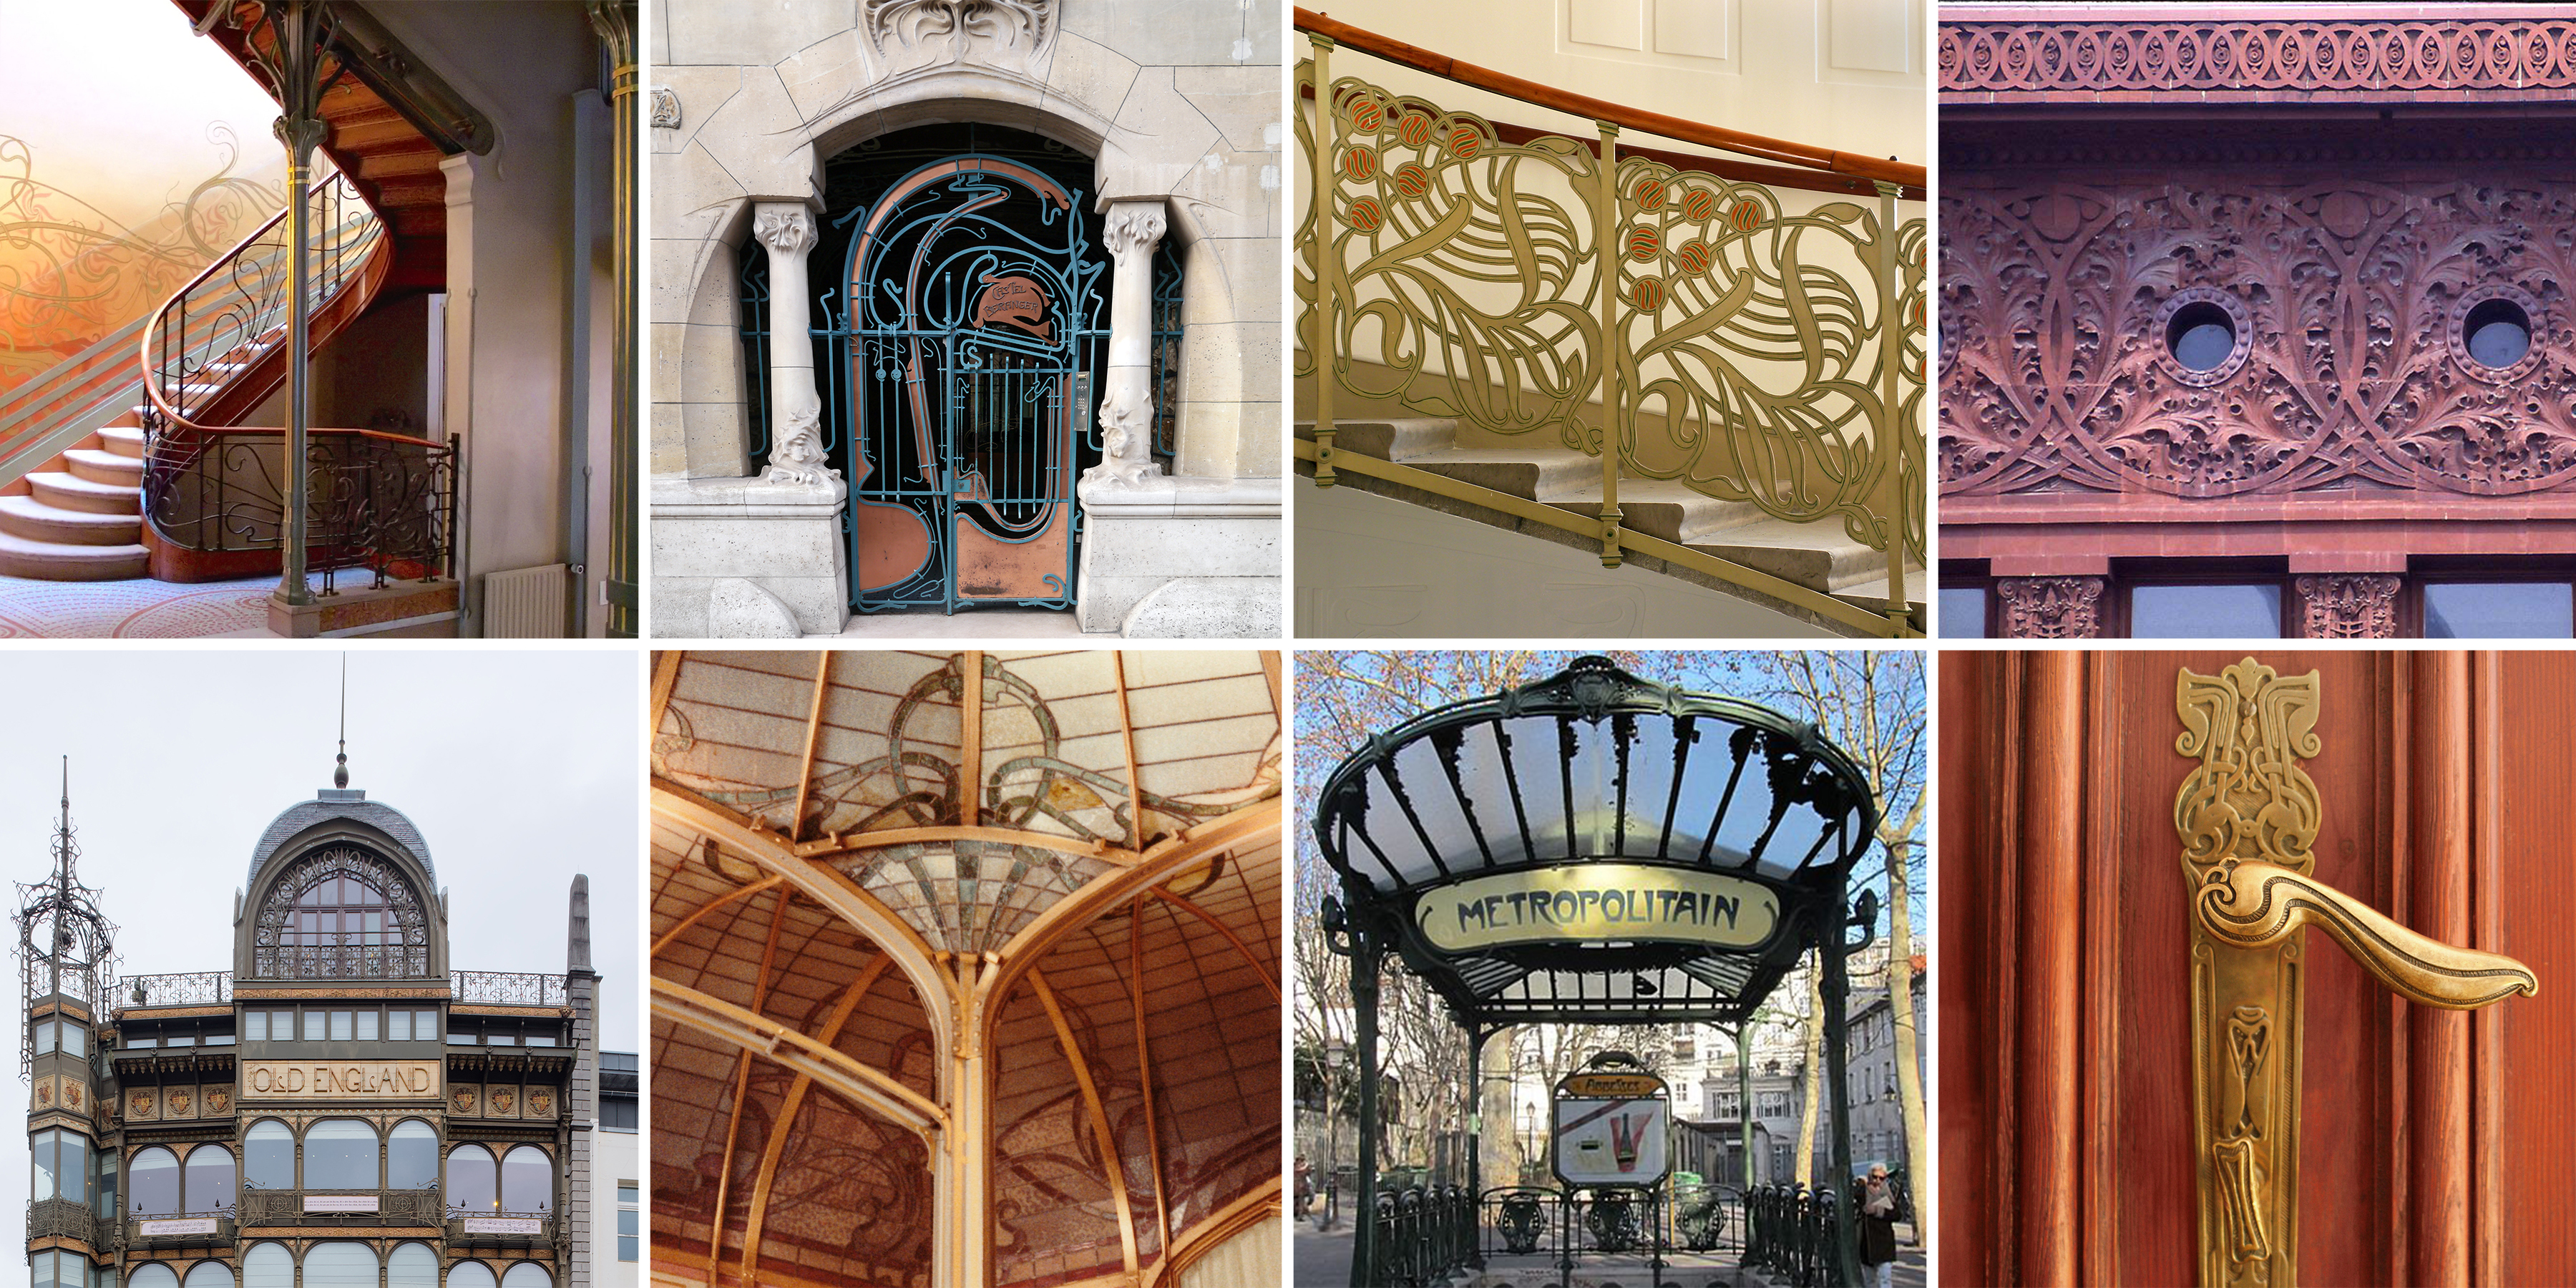 collage of images that represent the Art Nouveau style